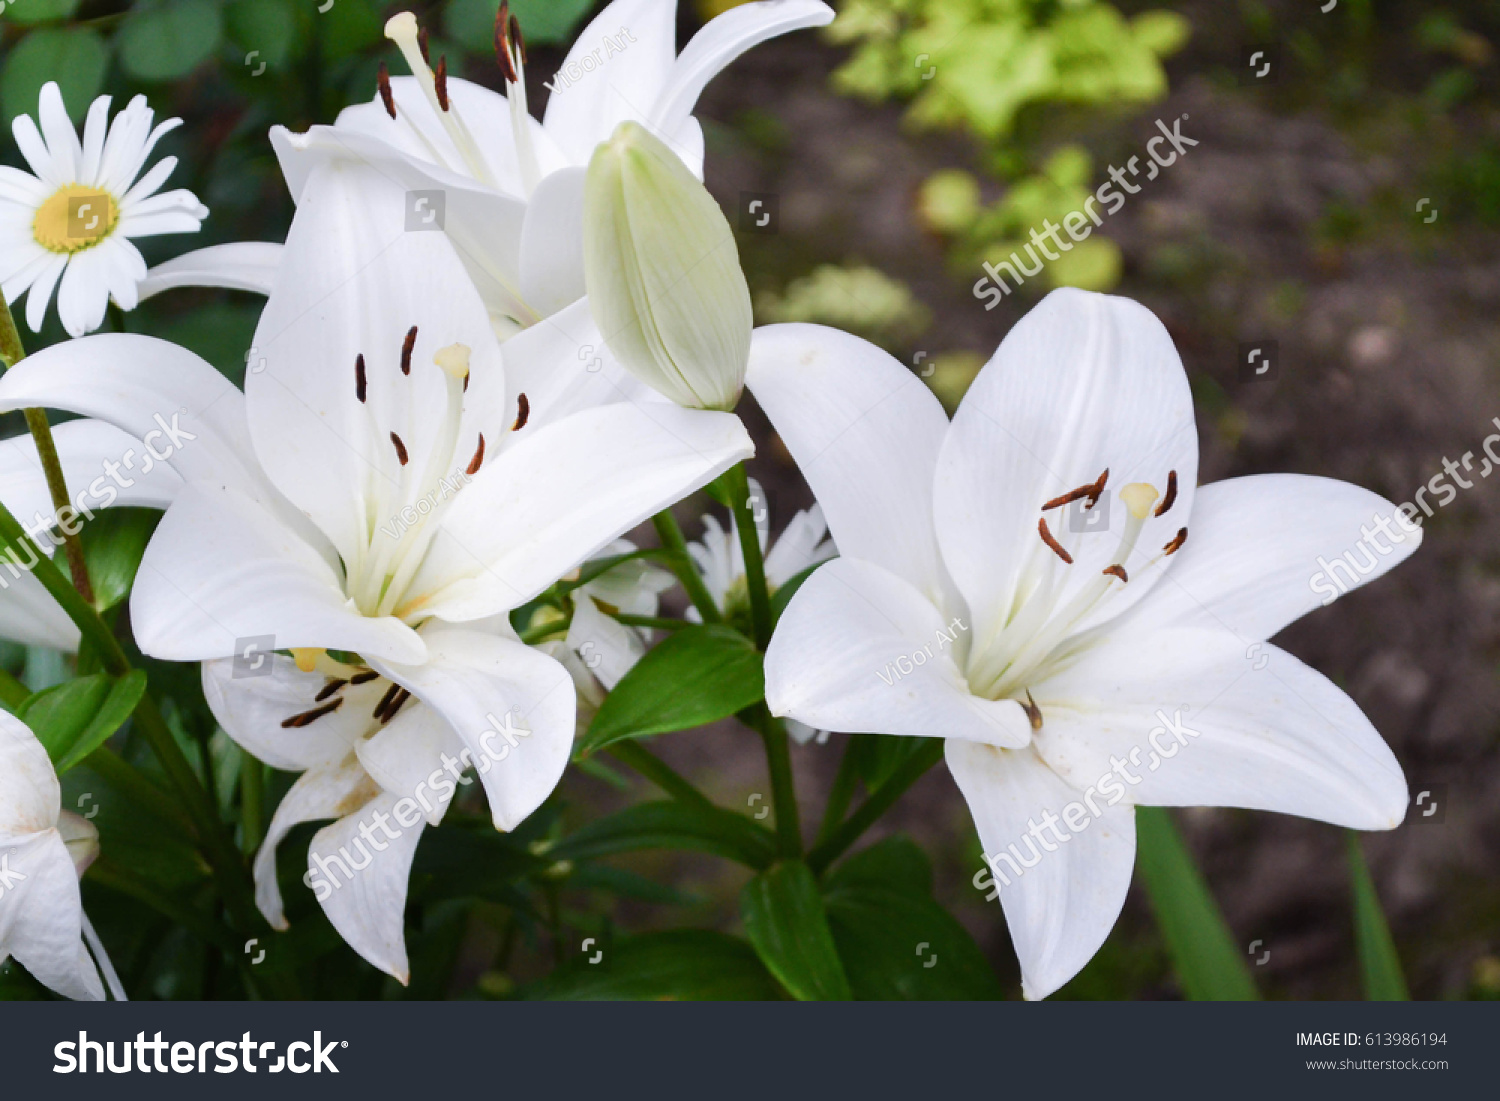 White asiatic lily flower garden beautiful stock photo edit now white asiatic lily flower in the garden beautiful nature lily flower blossom closeup petal plant izmirmasajfo